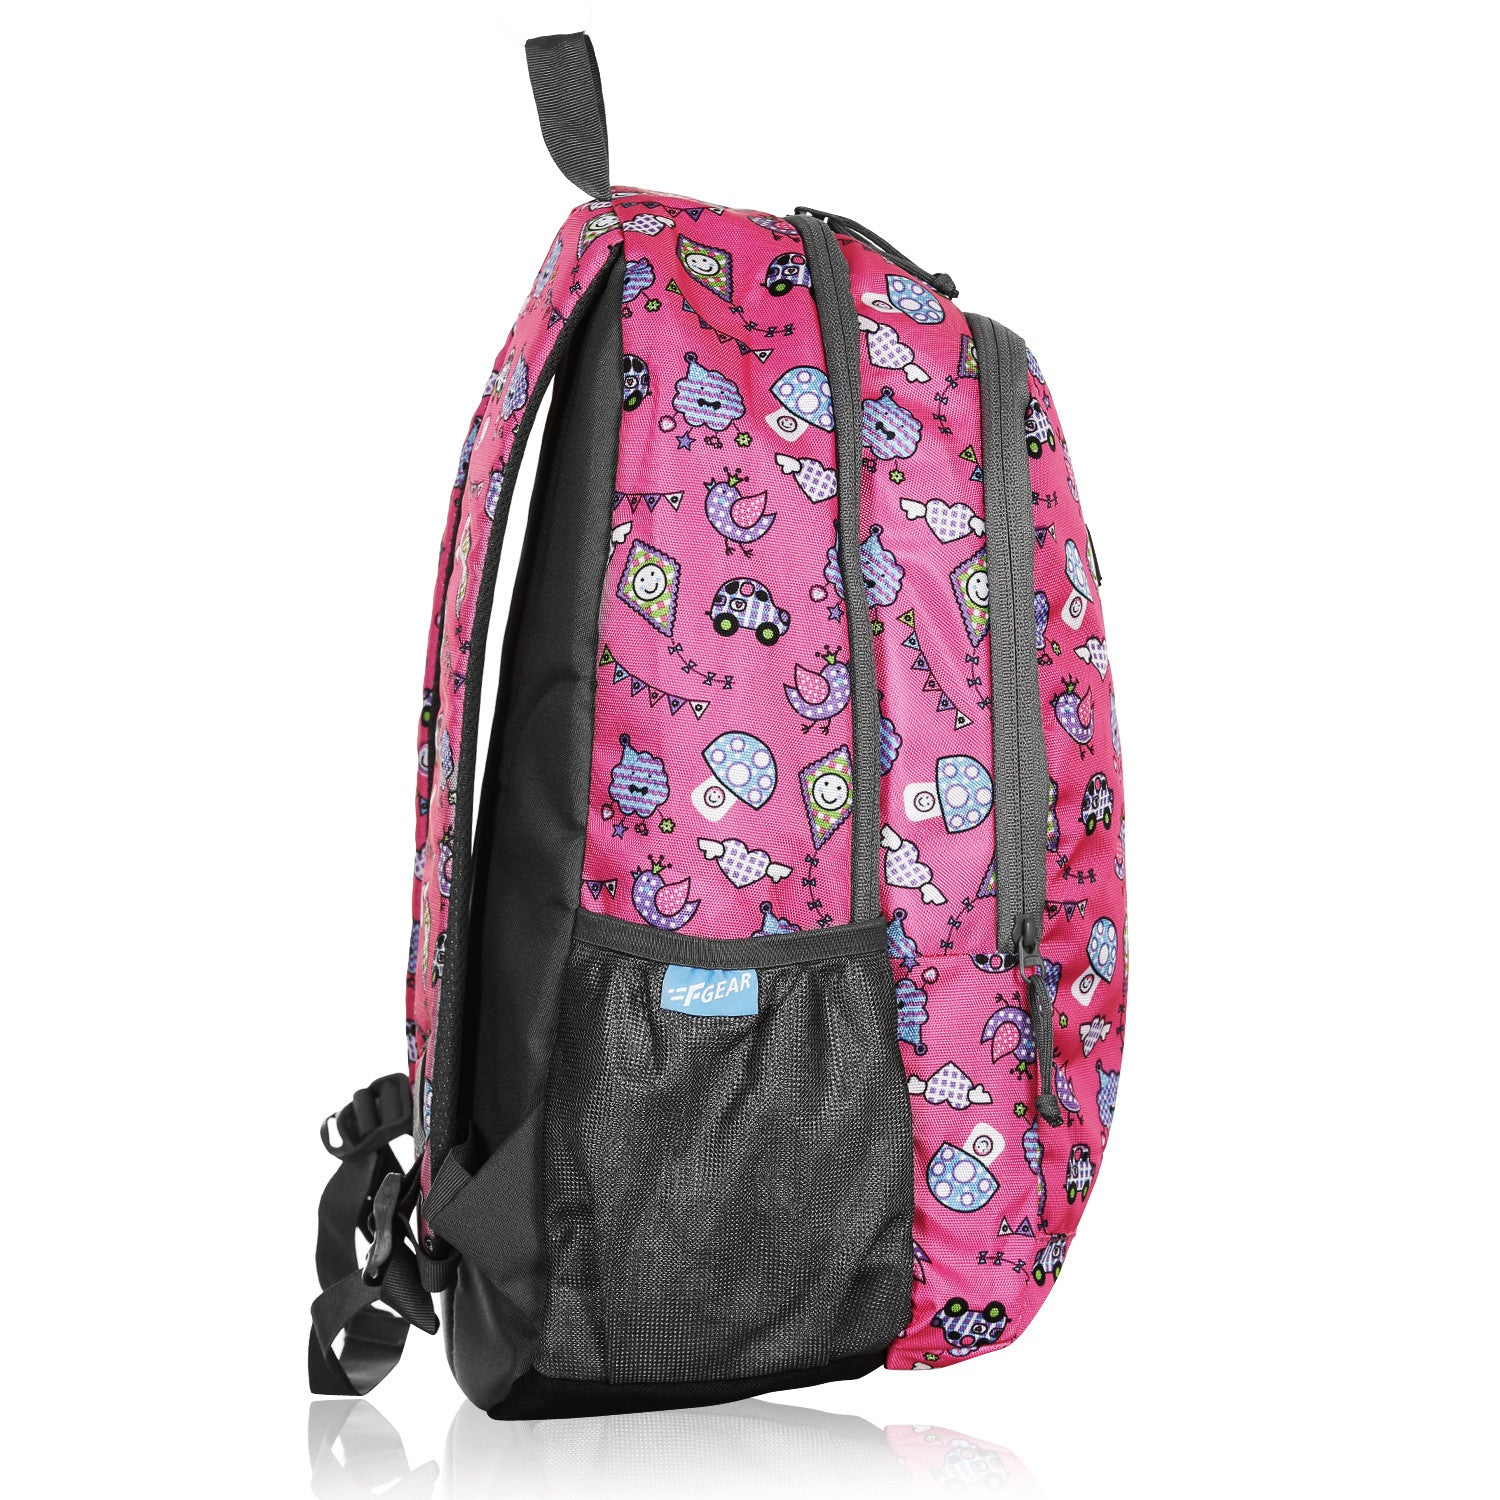 F Gear Castle Kites Pink Grey 22 L Polyester Backpack (3354)